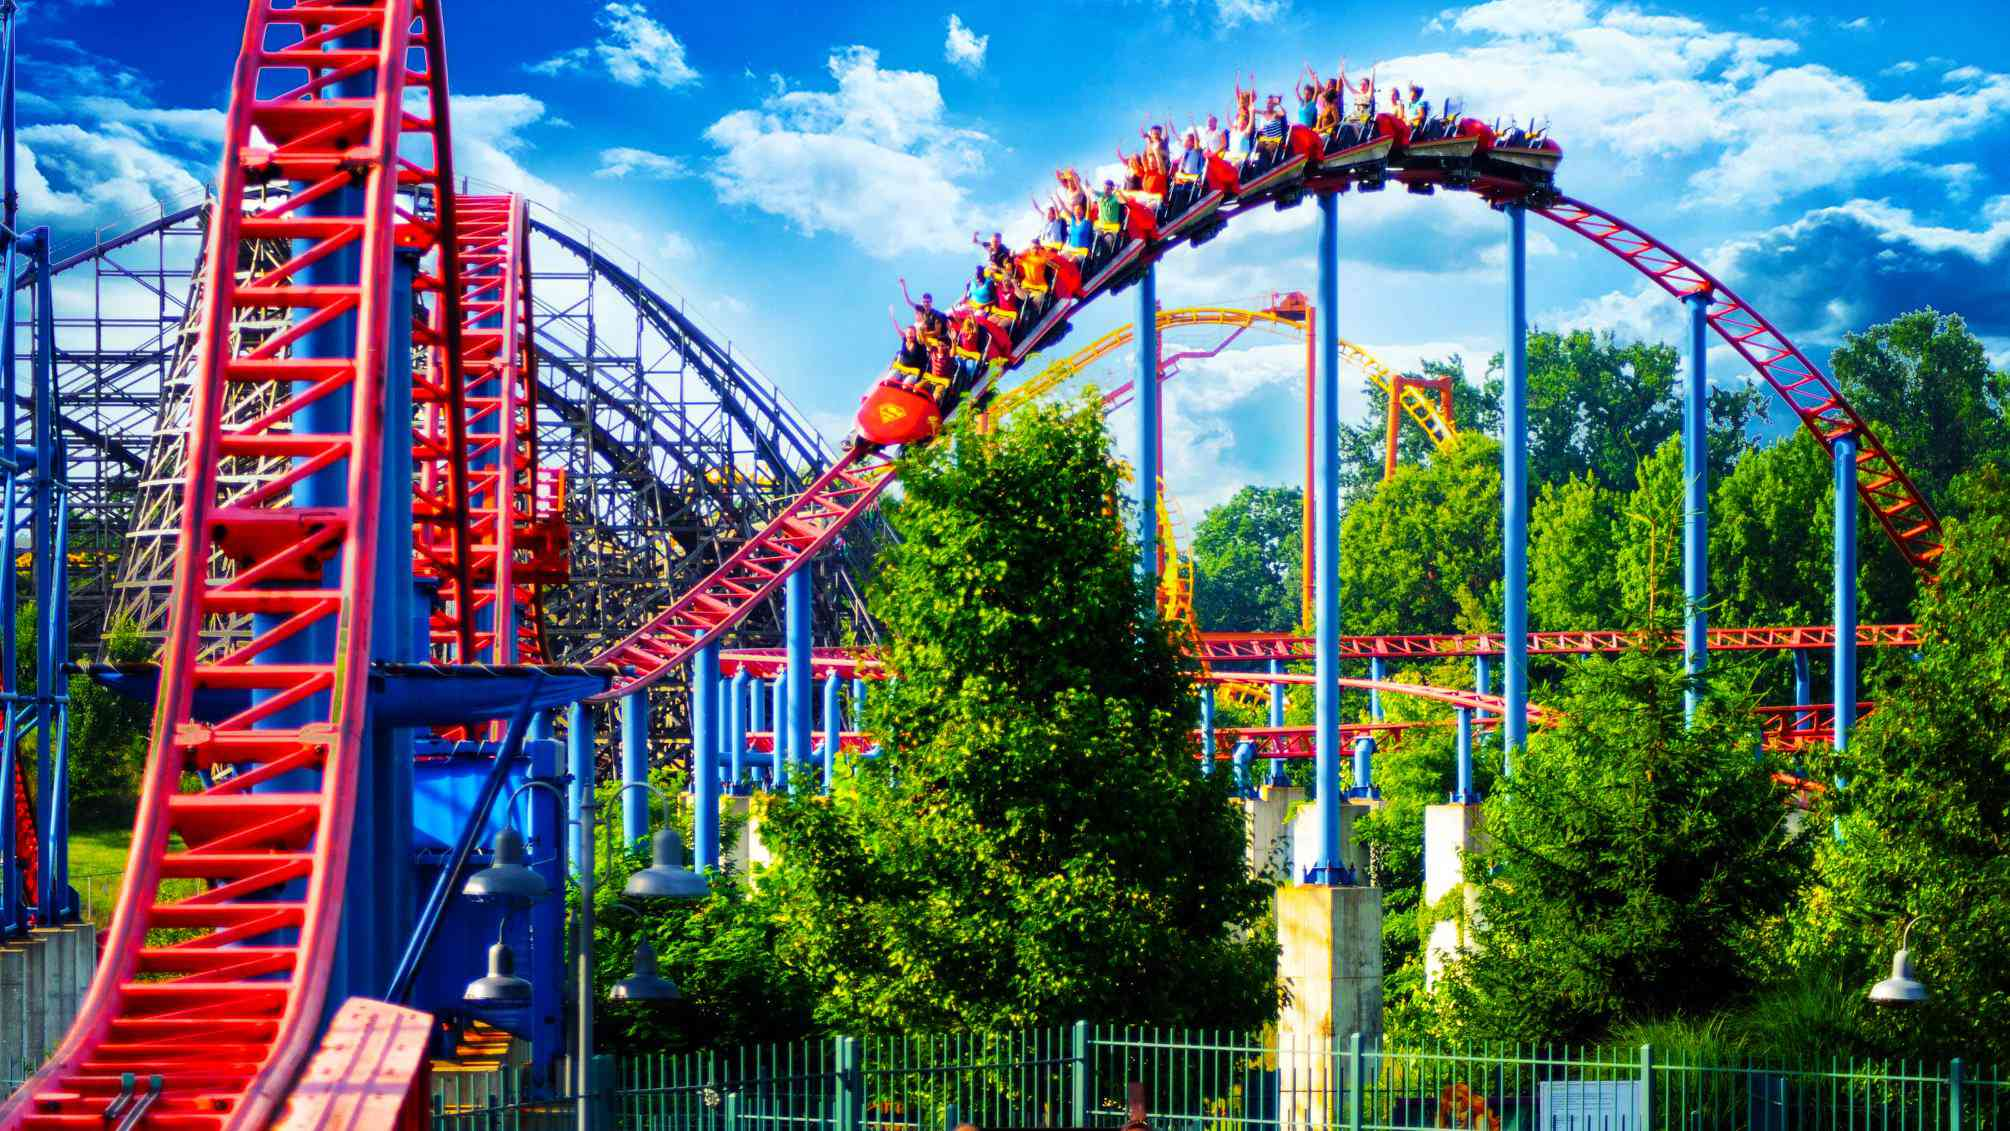 Roller Coaster at Six Flags New England